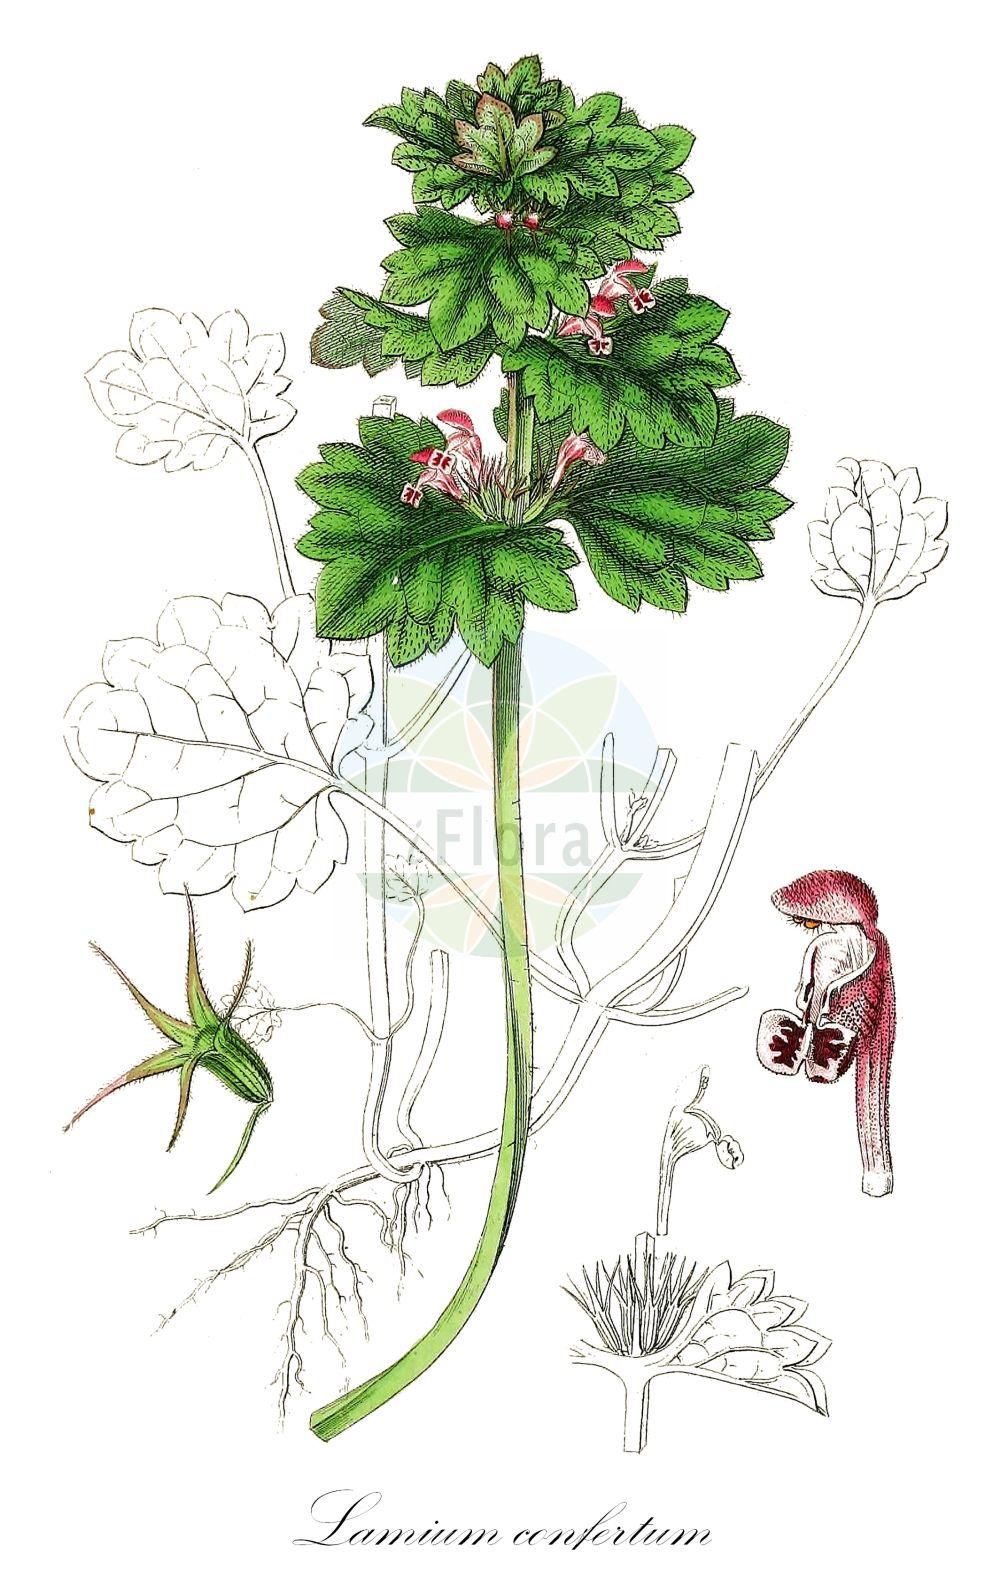 Historische Abbildung von Lamium confertum (Mittlere Taubnessel - Northern Dead-nettle). Das Bild zeigt Blatt, Bluete, Frucht und Same. ---- Historical Drawing of Lamium confertum (Mittlere Taubnessel - Northern Dead-nettle).The image is showing leaf, flower, fruit and seed.(Lamium confertum,Mittlere Taubnessel,Northern Dead-nettle,Lamium coutinhoi,Lamium intermedium,Intermediate Deadnettle,Lamium,Taubnessel,Deadnettle,Lamiaceae,Lippenbluetengewaechse;Lippenbluetler,Nettle family,Blatt,Bluete,Frucht,Same,leaf,flower,fruit,seed,Sowerby (1790-1813))